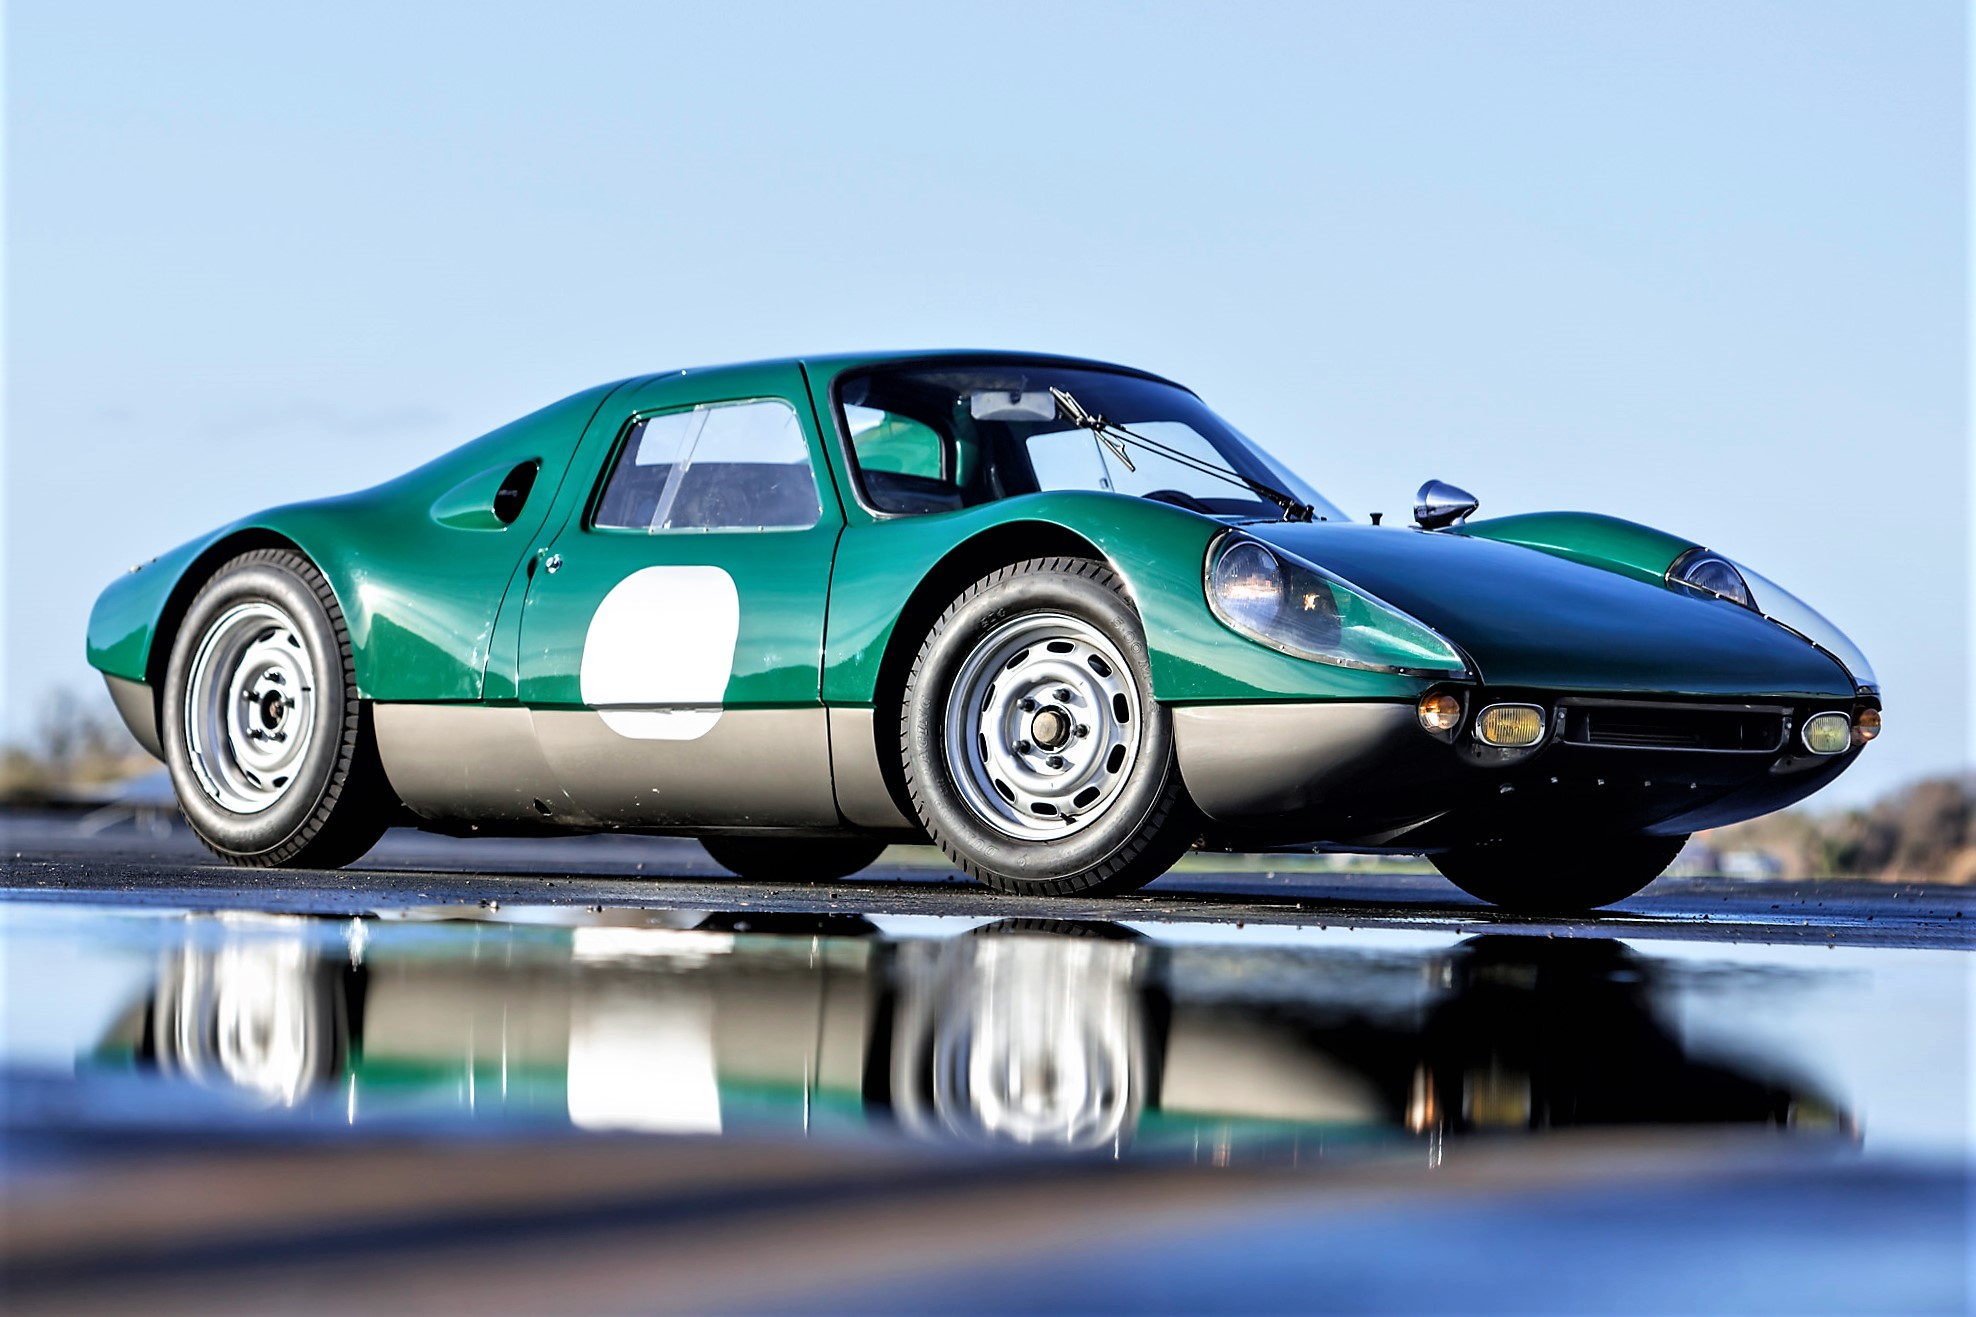 Robert Redford Porsche 904 Lambo Miura Sv To Highlight Bonhams Auction